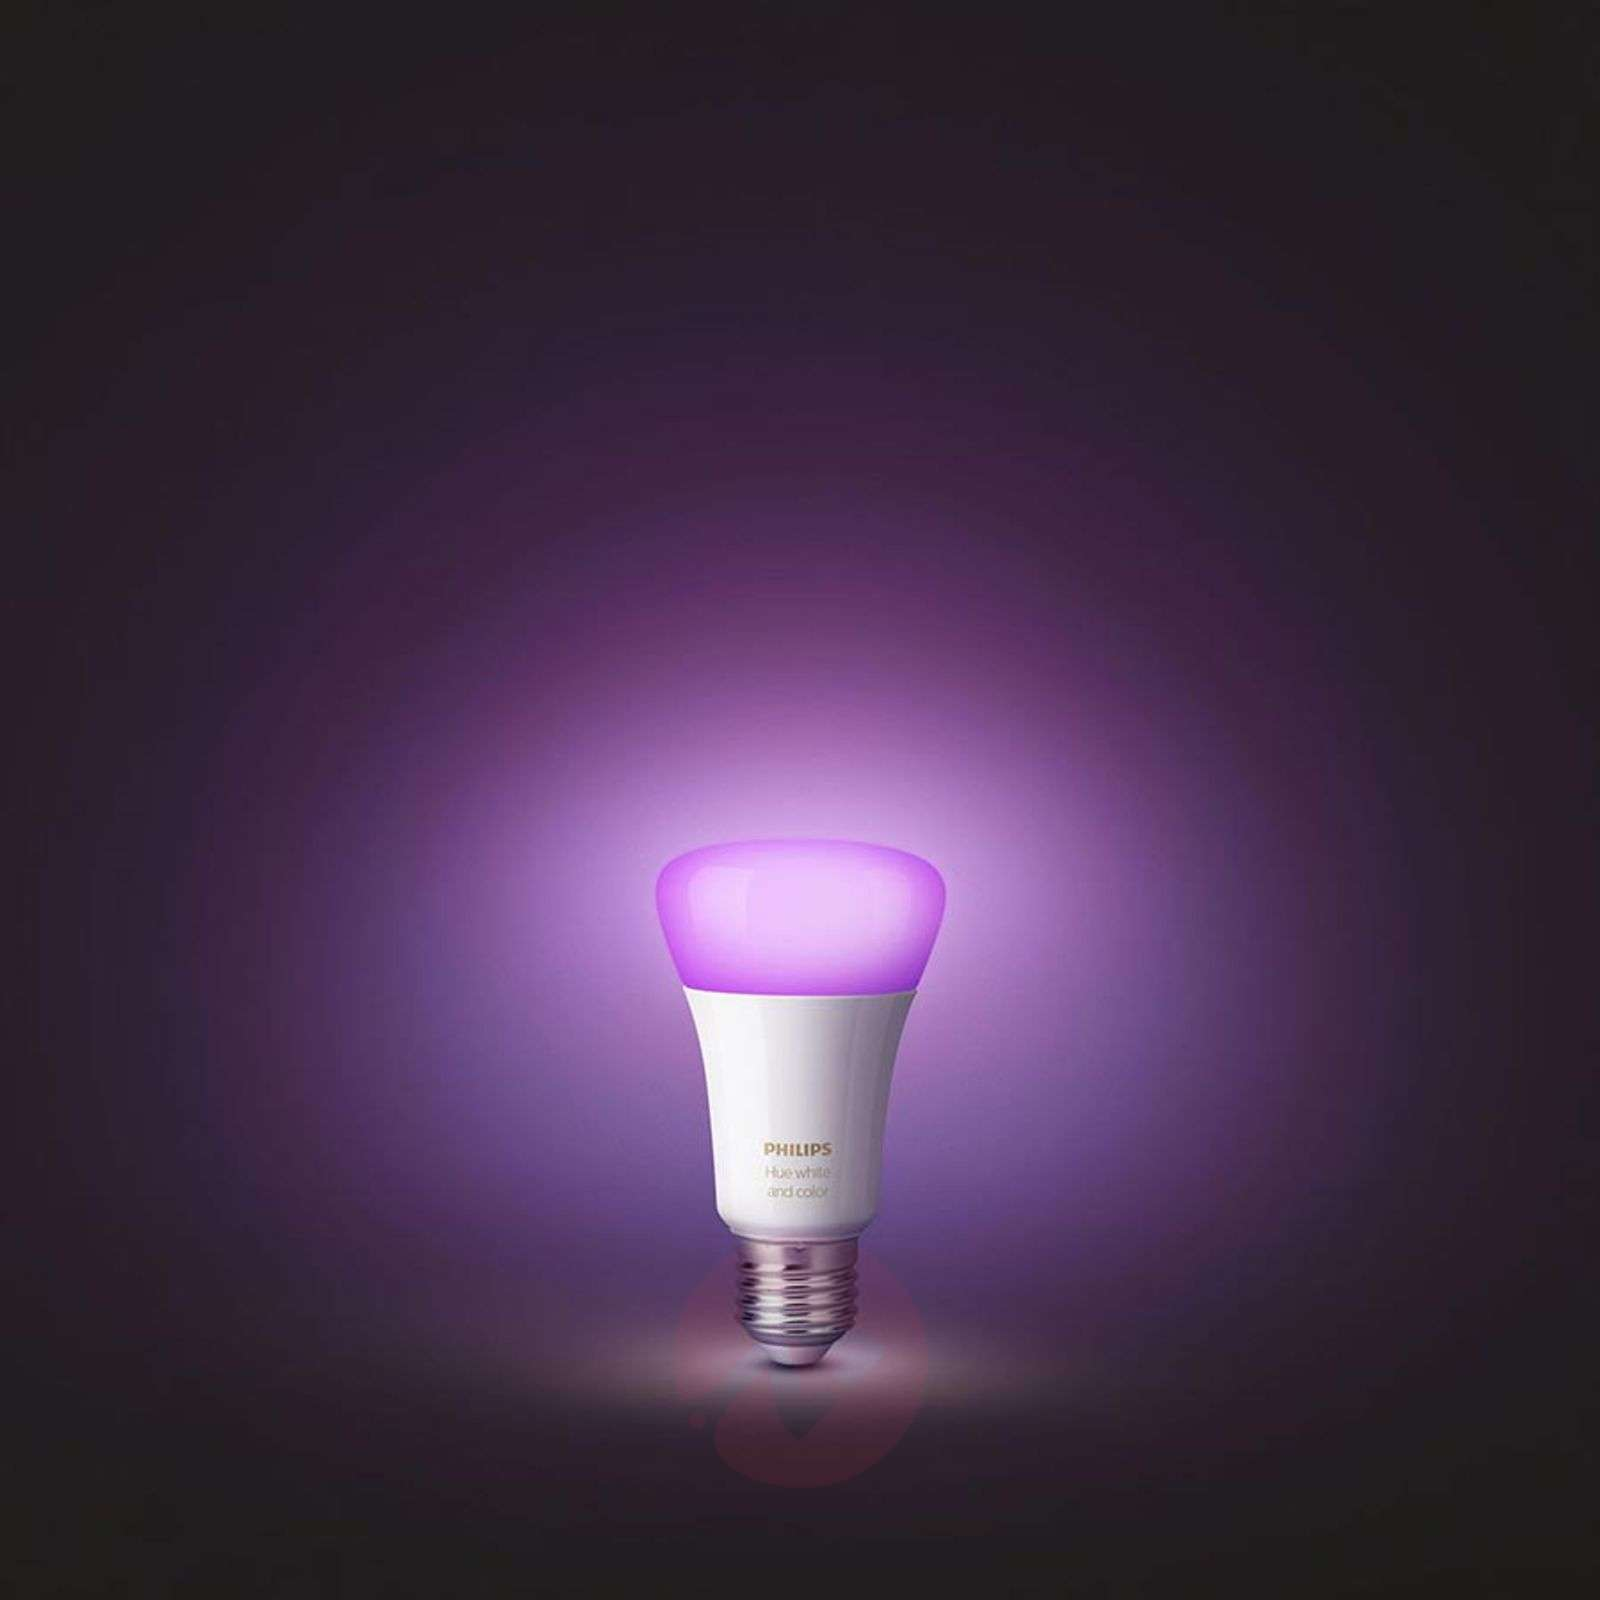 2 ampoules Philips Hue E27 White+Color Ambiance-7532035-01